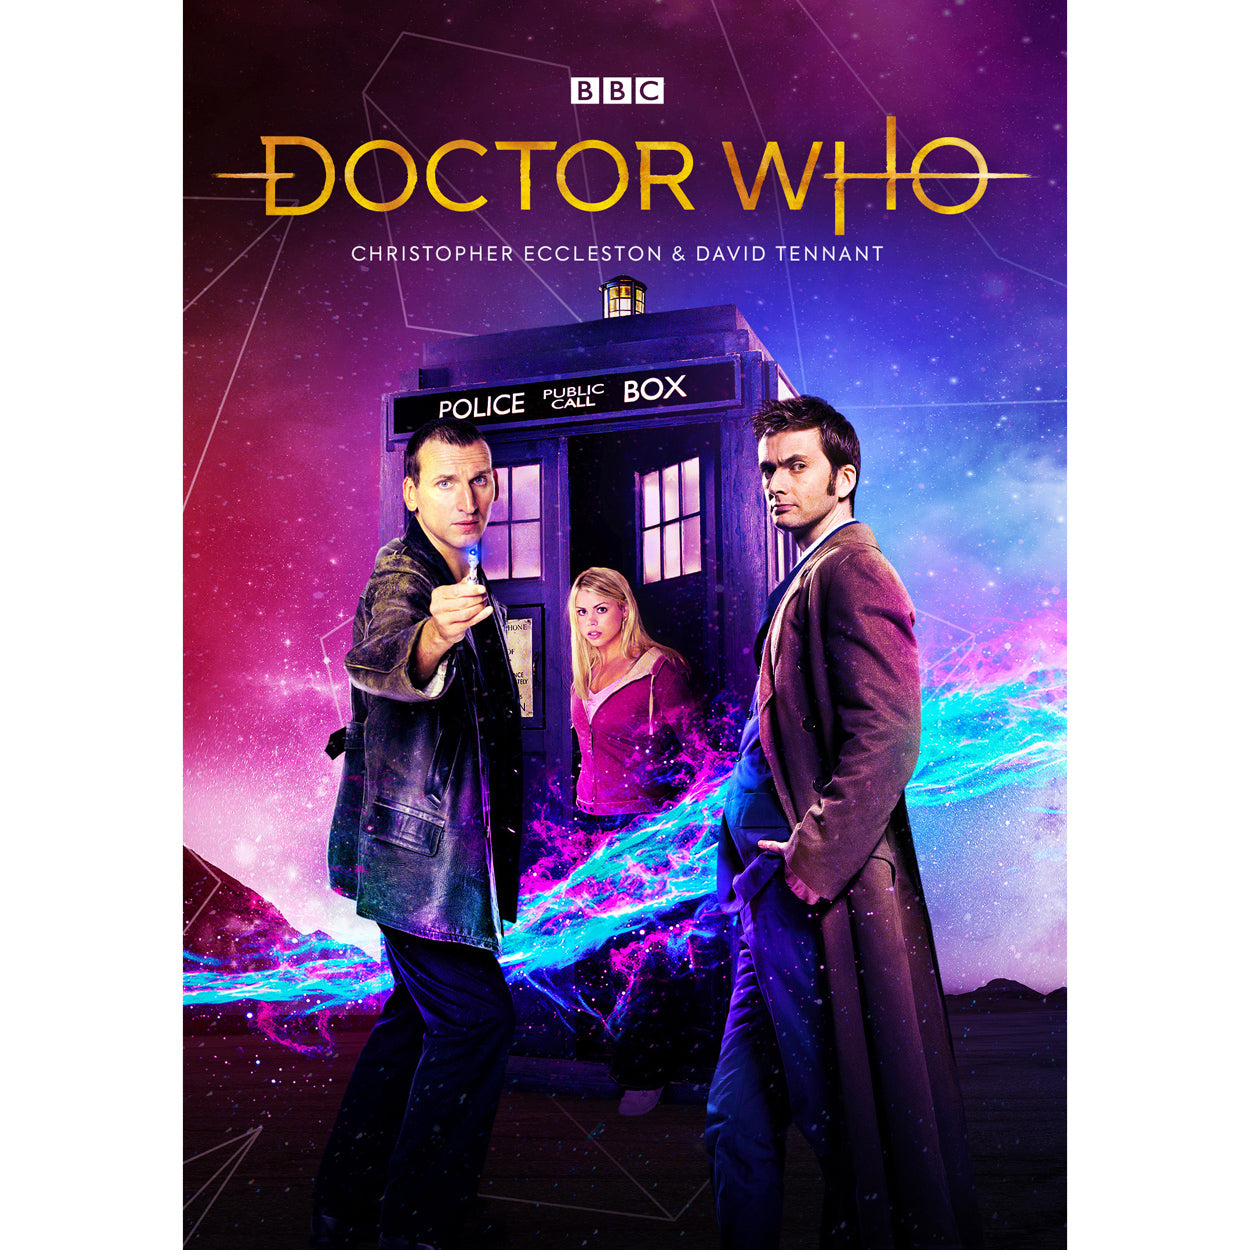 Doctor Who: The Christopher Eccleston & David Tennant Collection